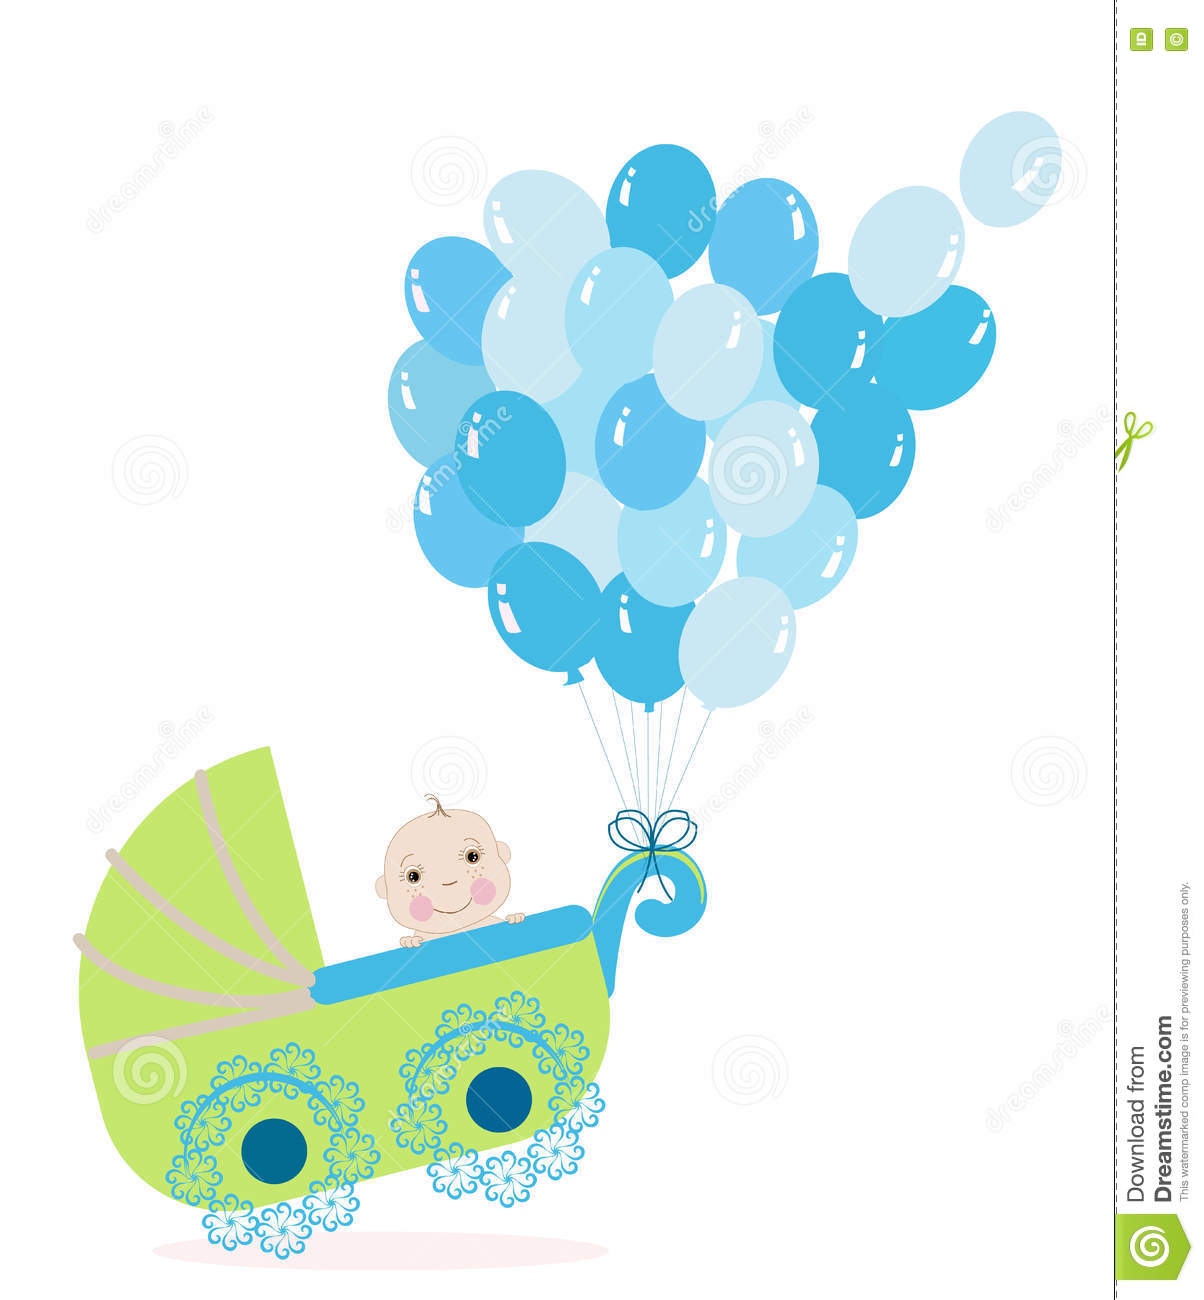 Baby boy stroller with balloon. Baby shower greeting card